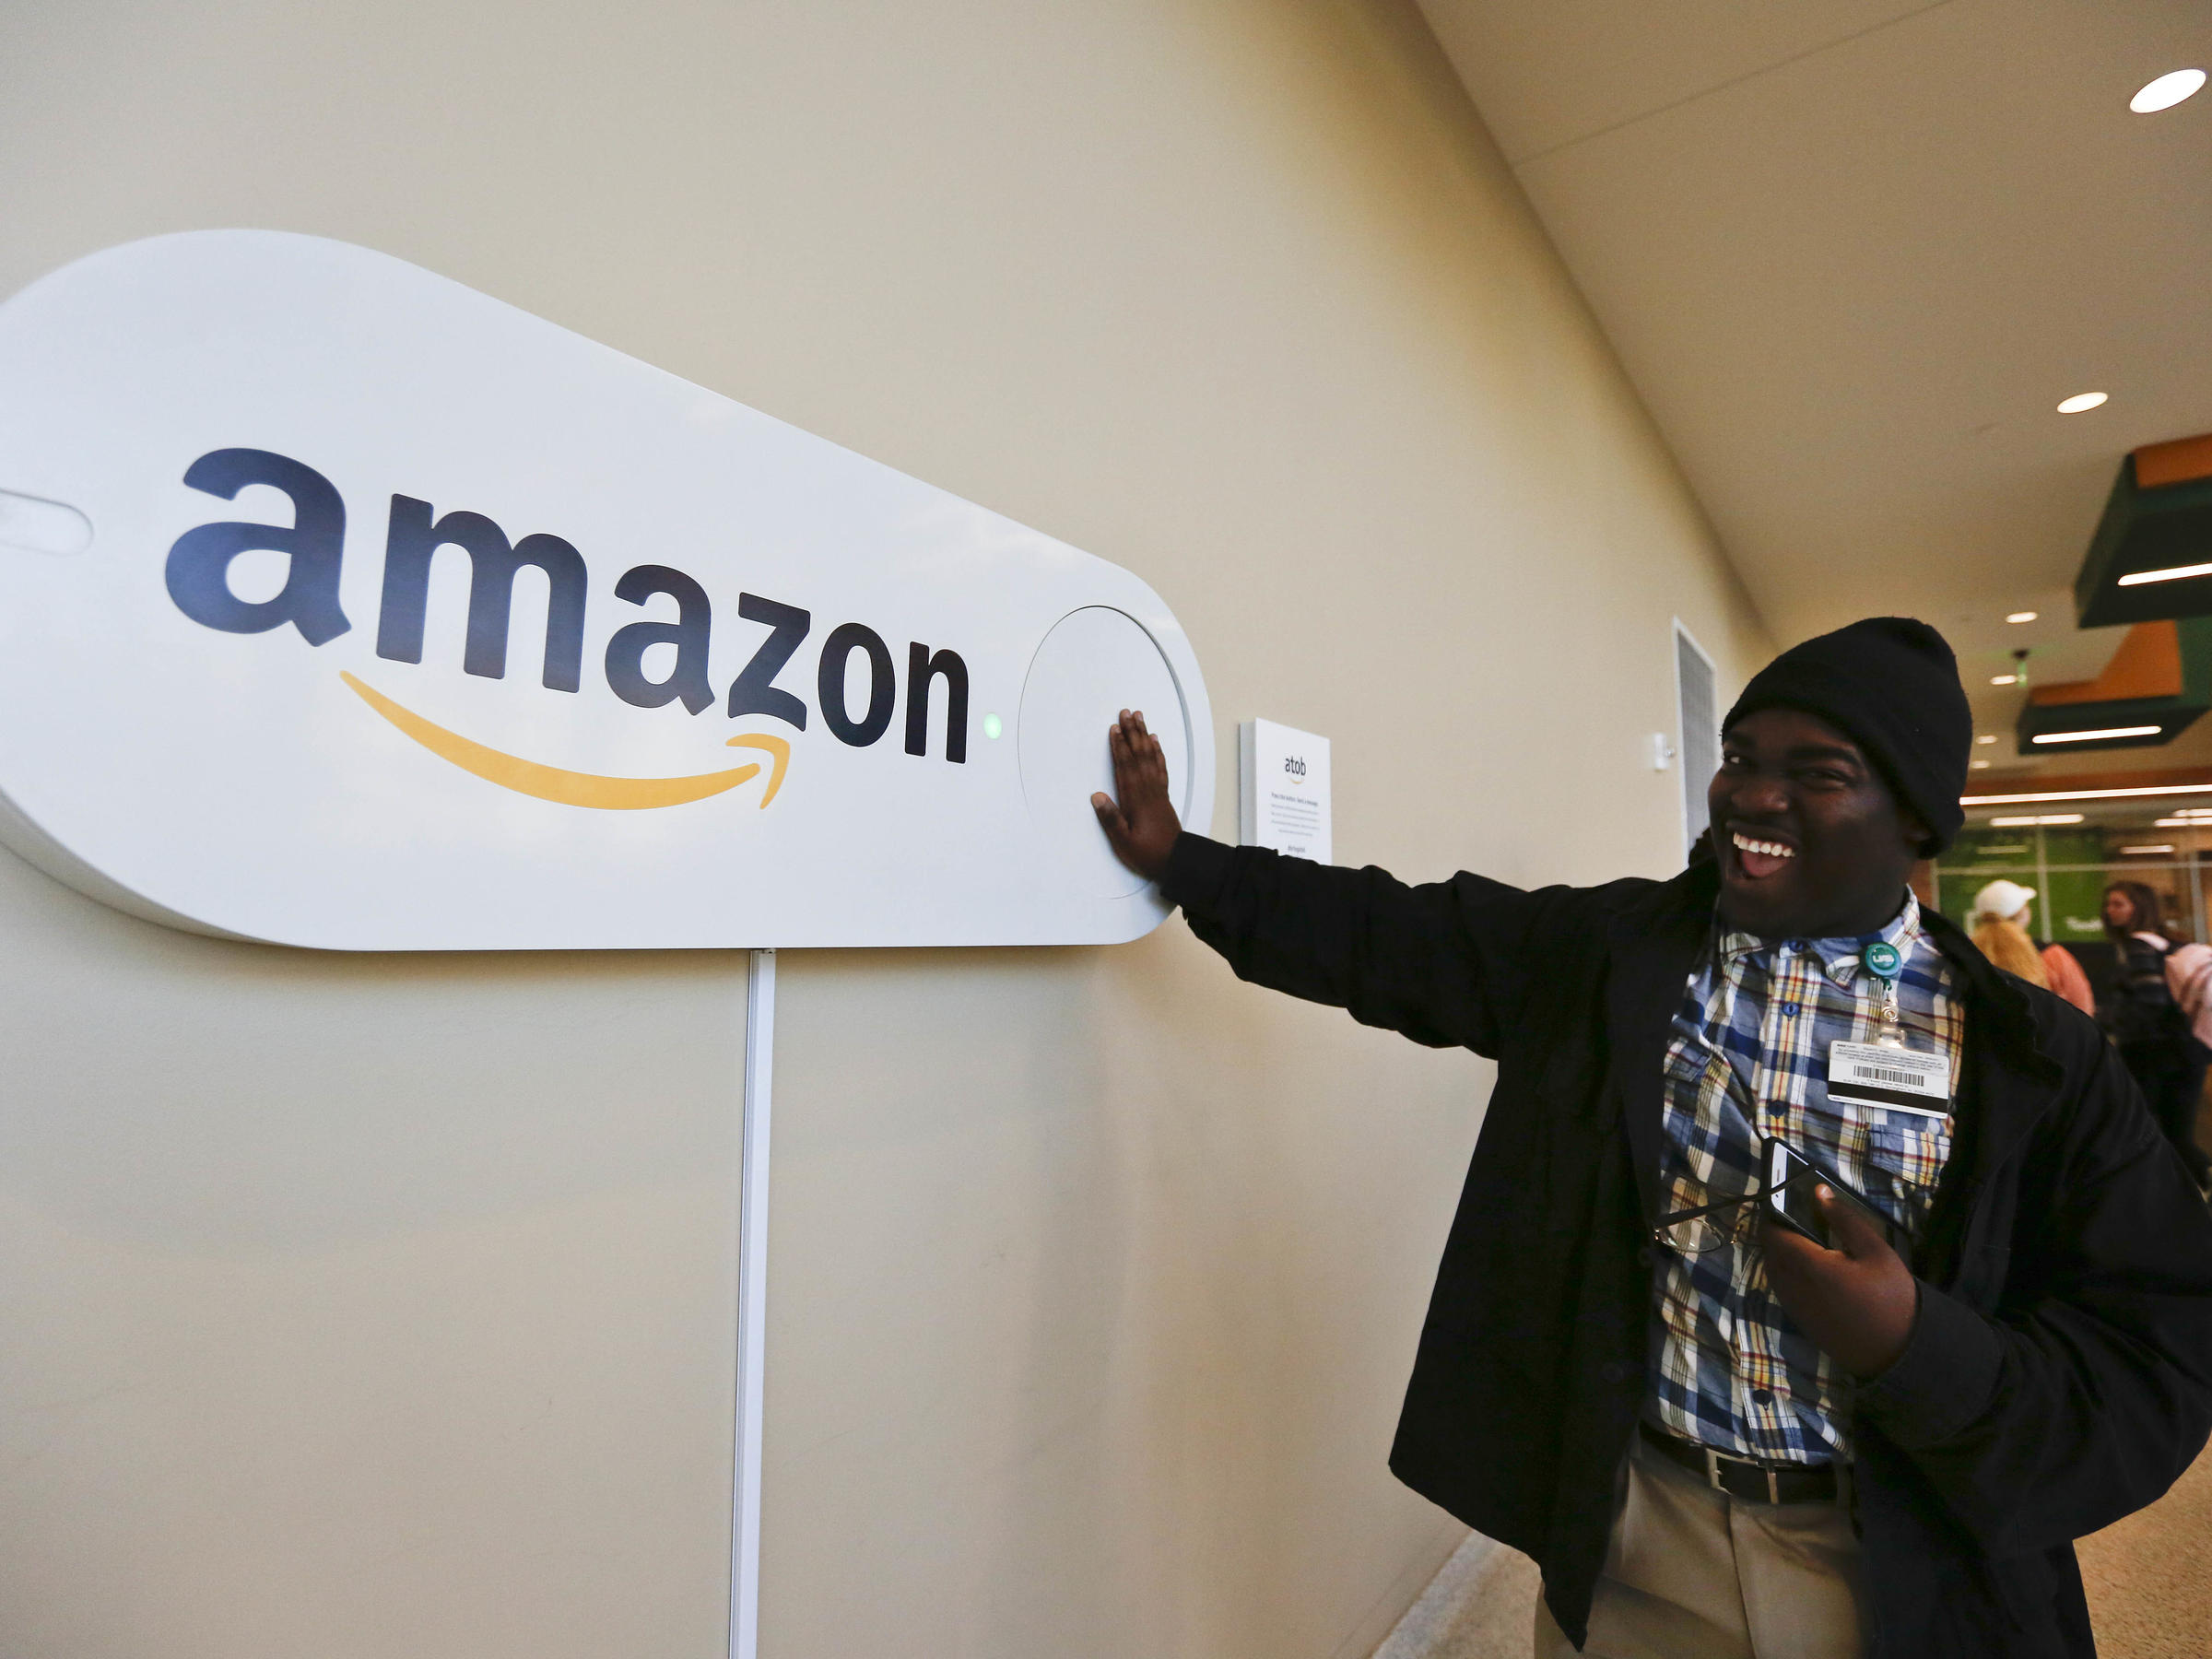 Zavian Tate a student at the University of Alabama at Birmingham pushes a large Amazon Dash button part of the campaign to lure Amazon's second headquarters to the city